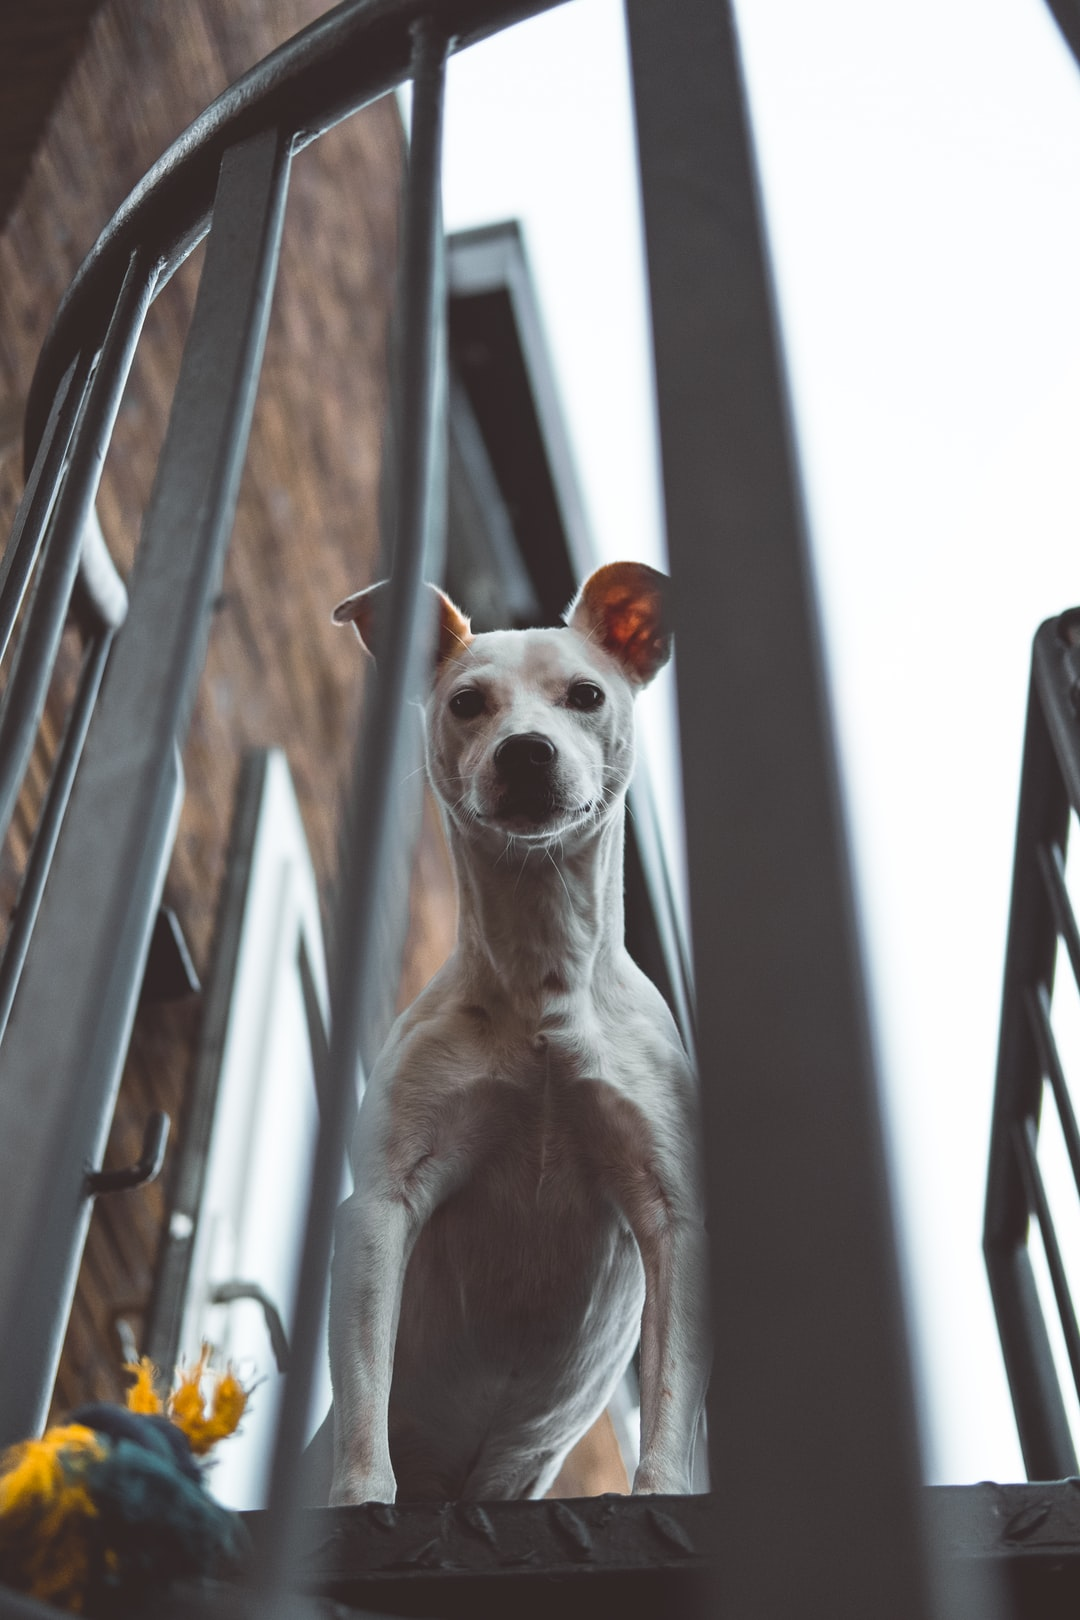 Our dog on the balcony.